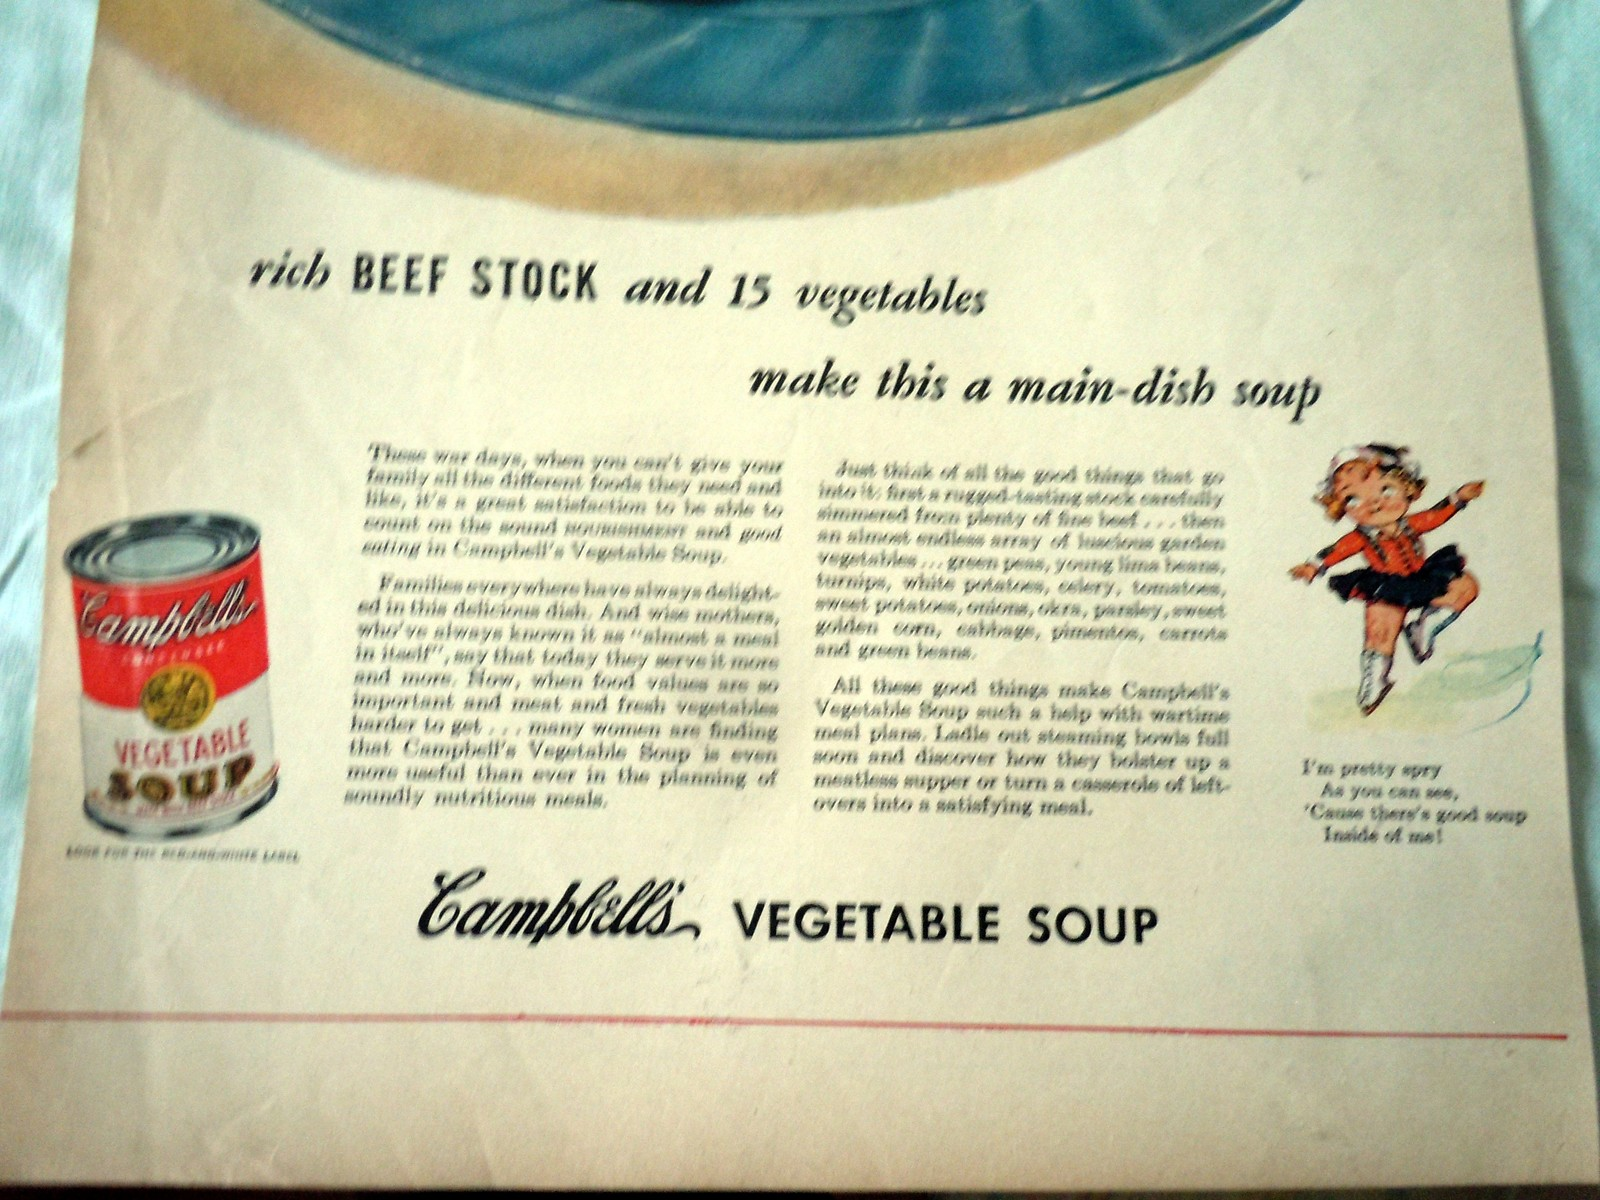 Campbell's Vegetable Soup Nourishing Advertising Print Ad Art 1940s image 3